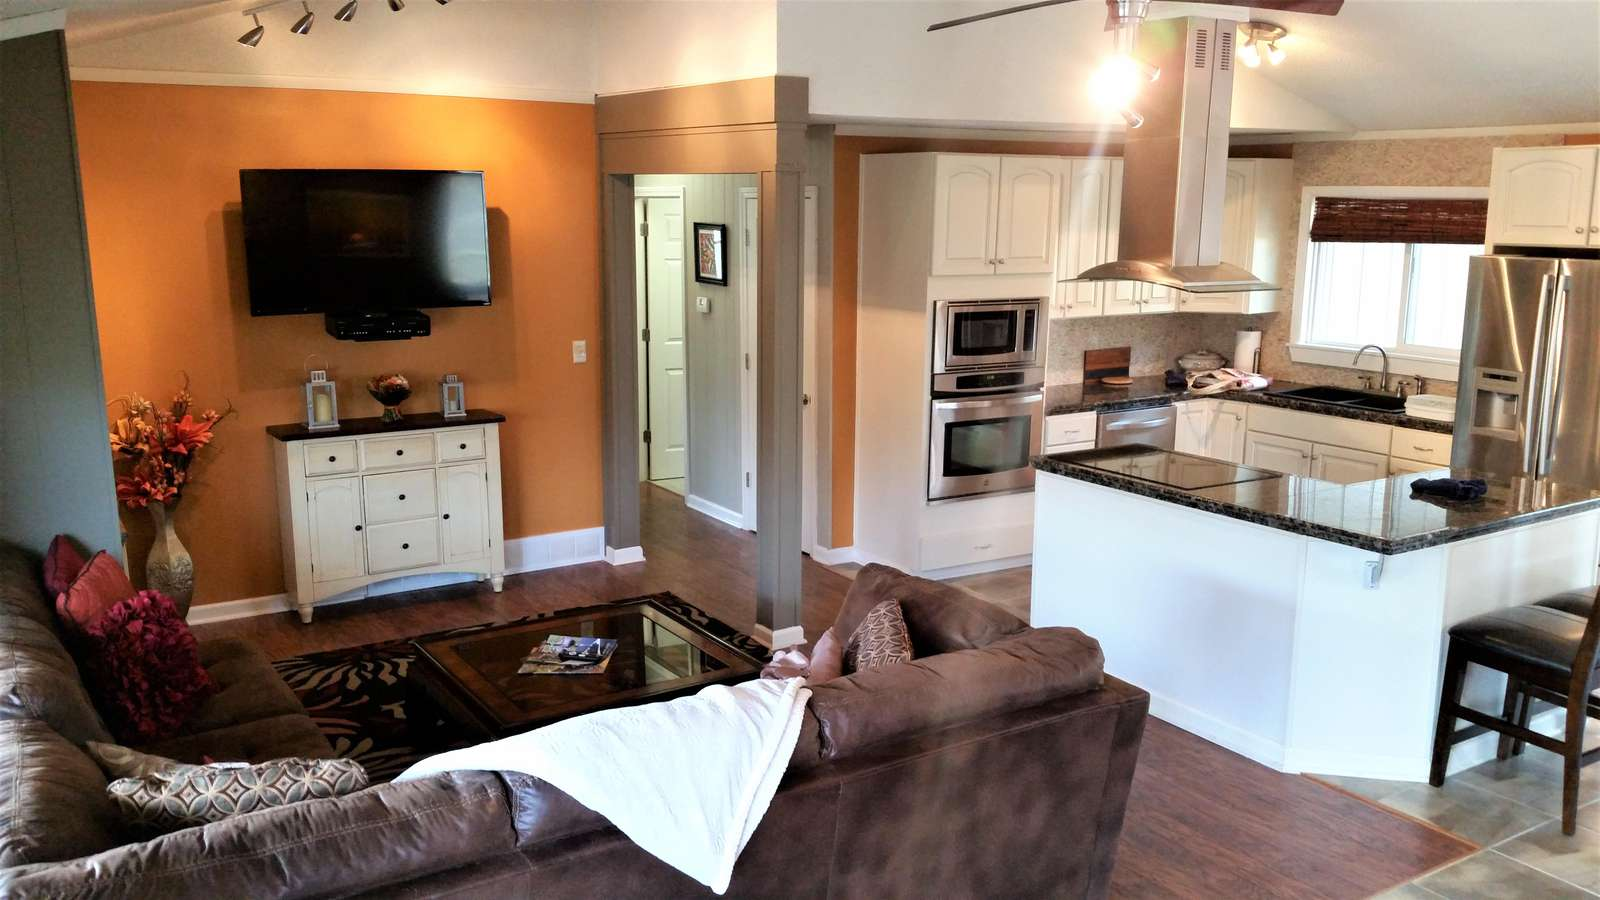 Large open kitchen/living/dining area